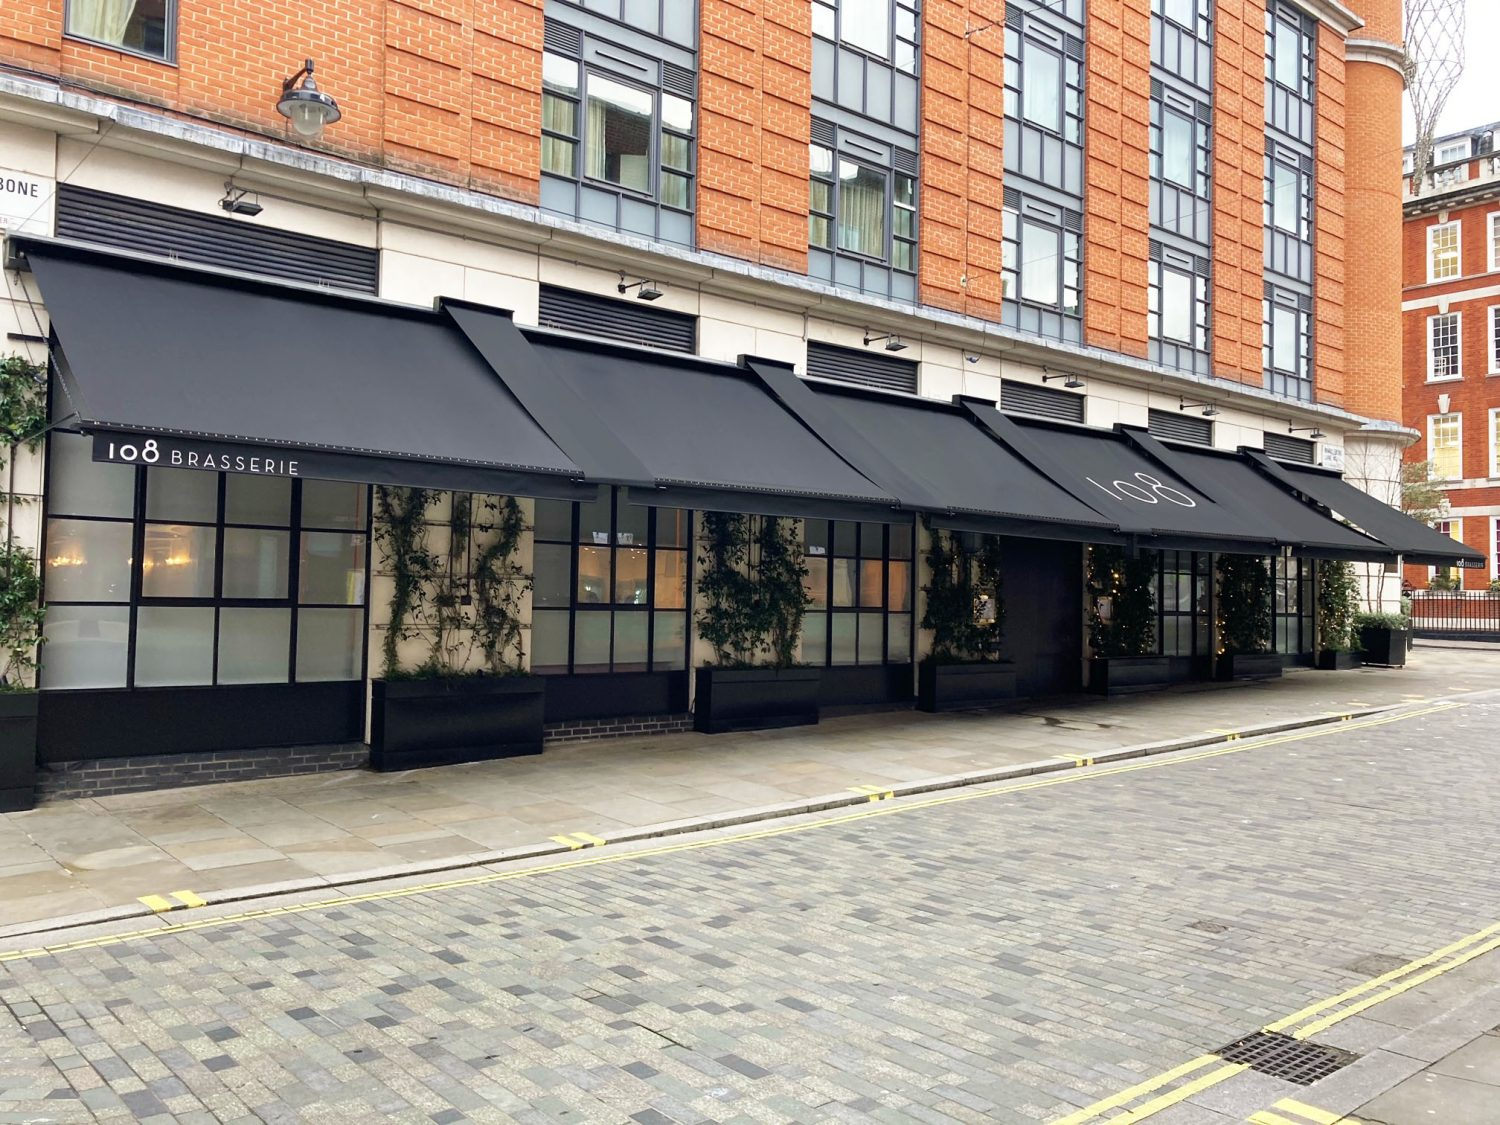 Traditional awning with junctions